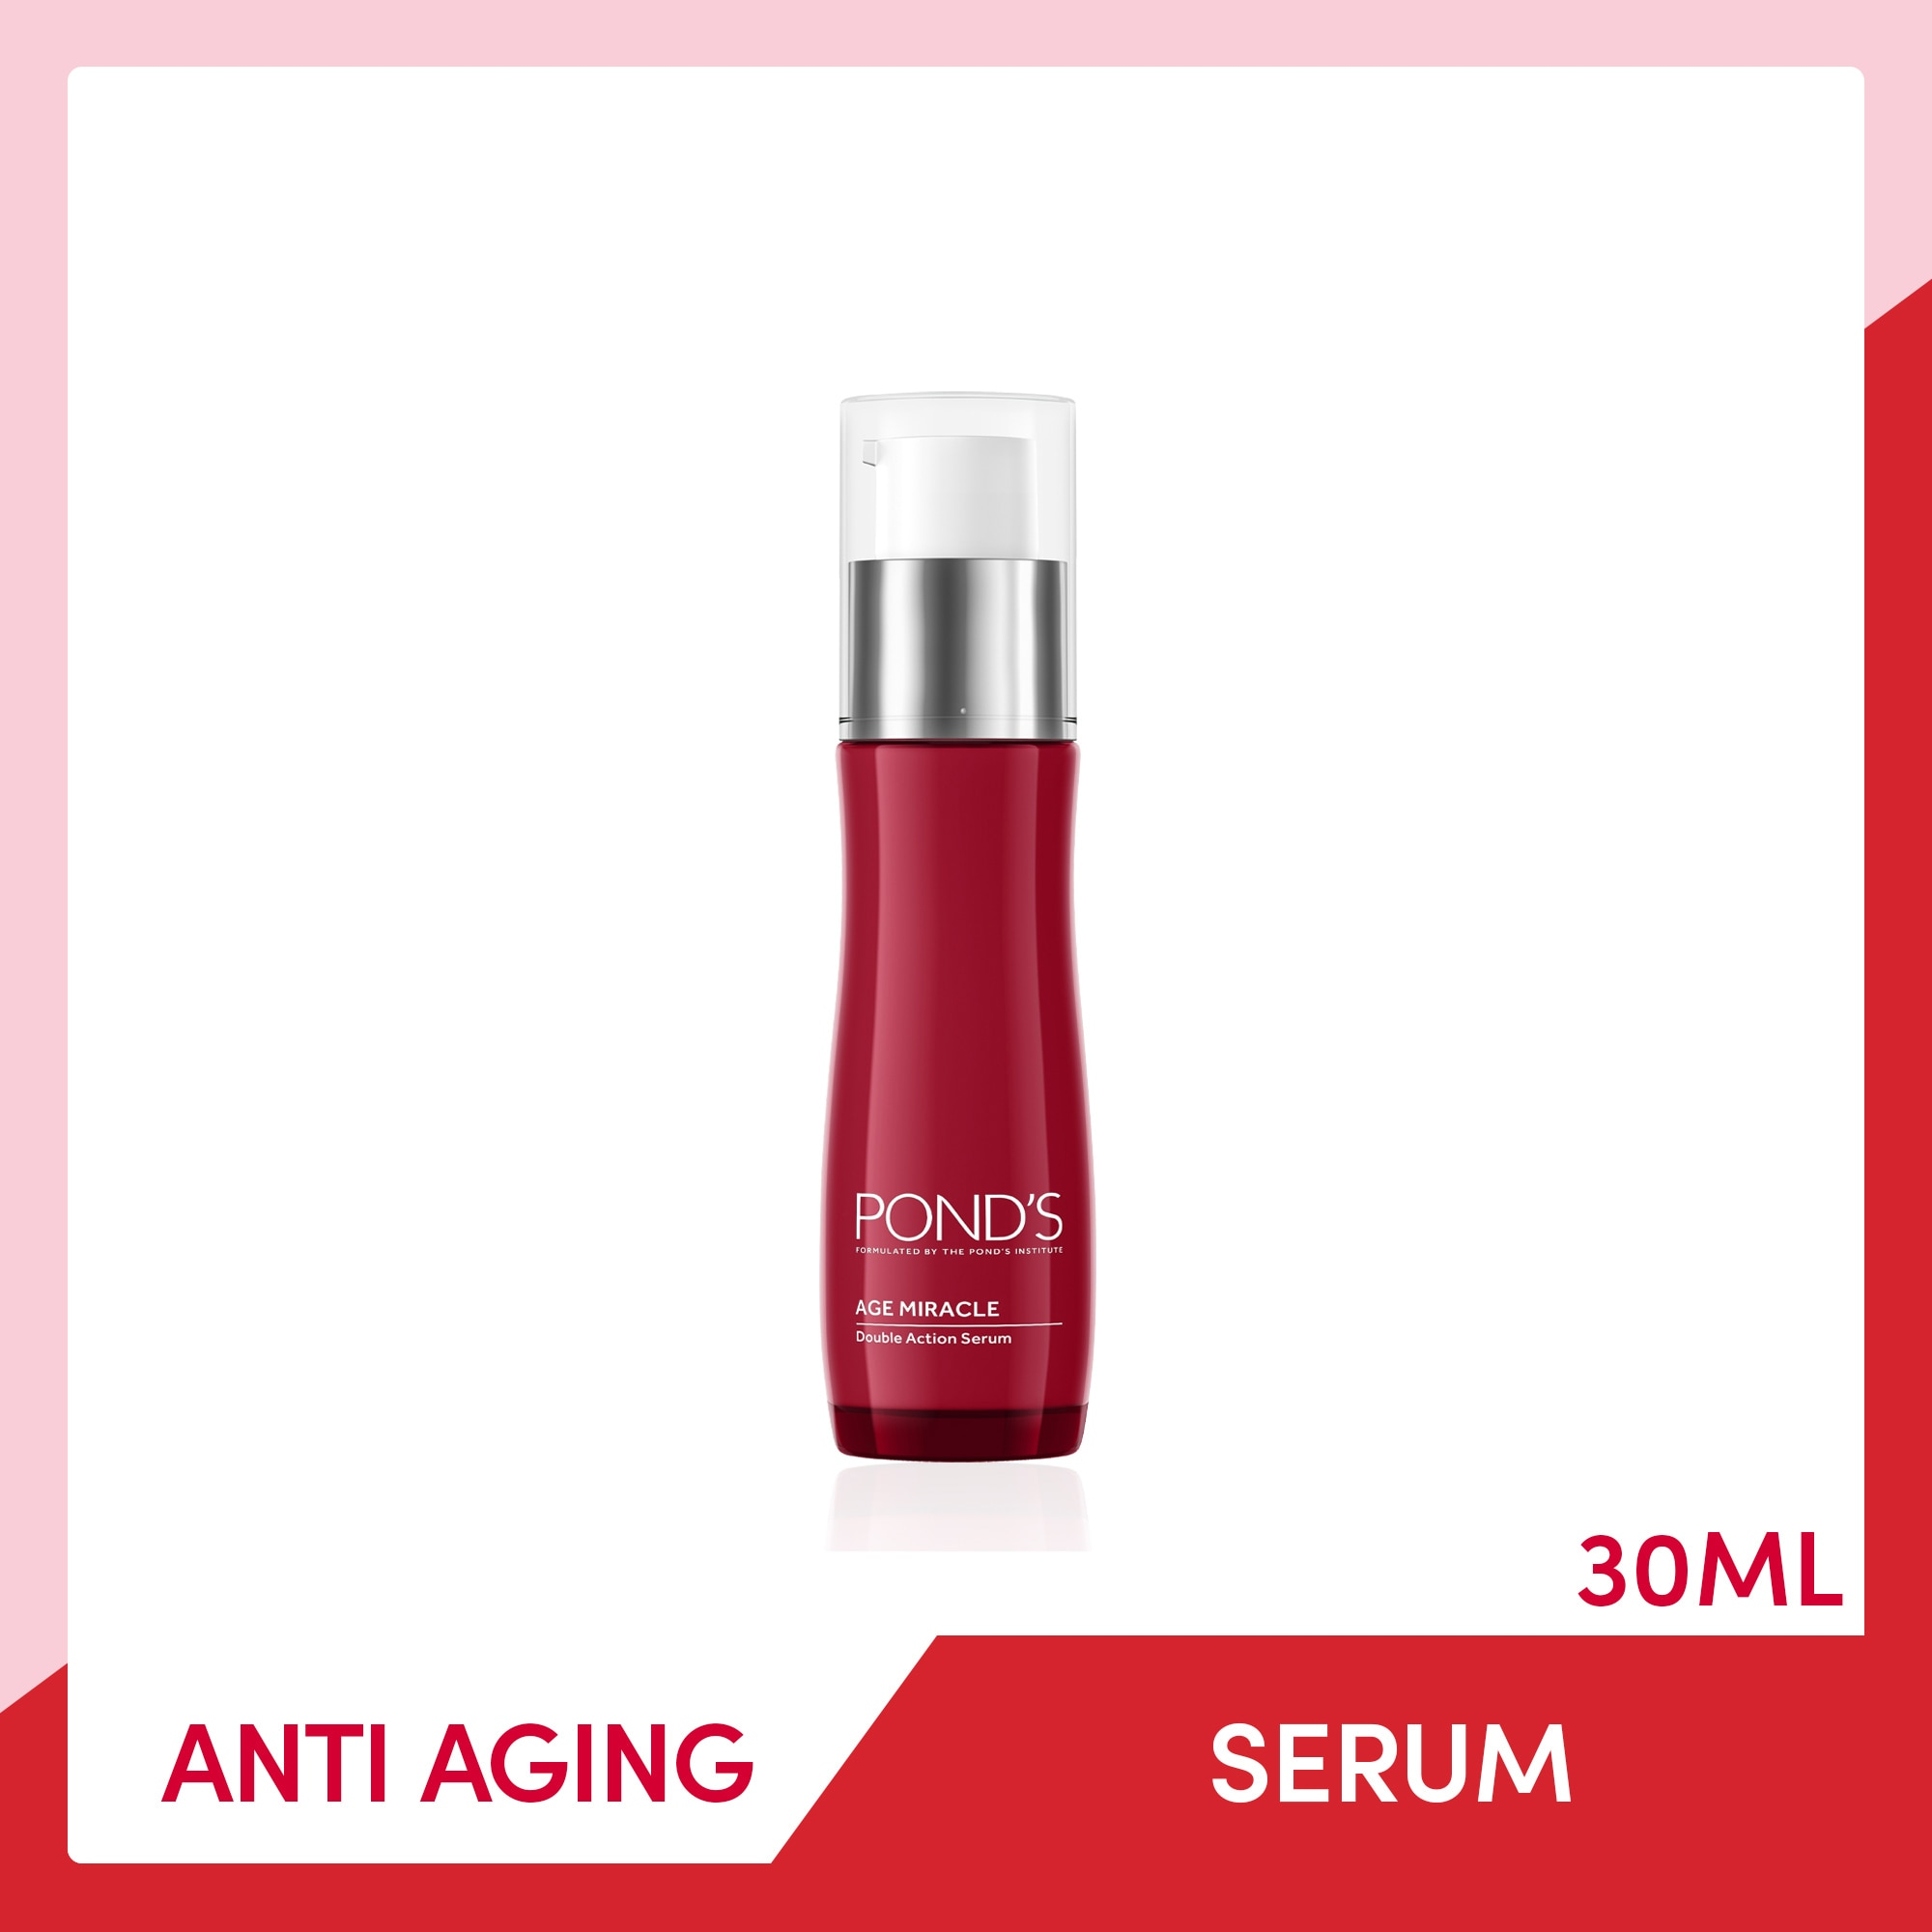 Ponds Age Miracle Double Serum 30ml